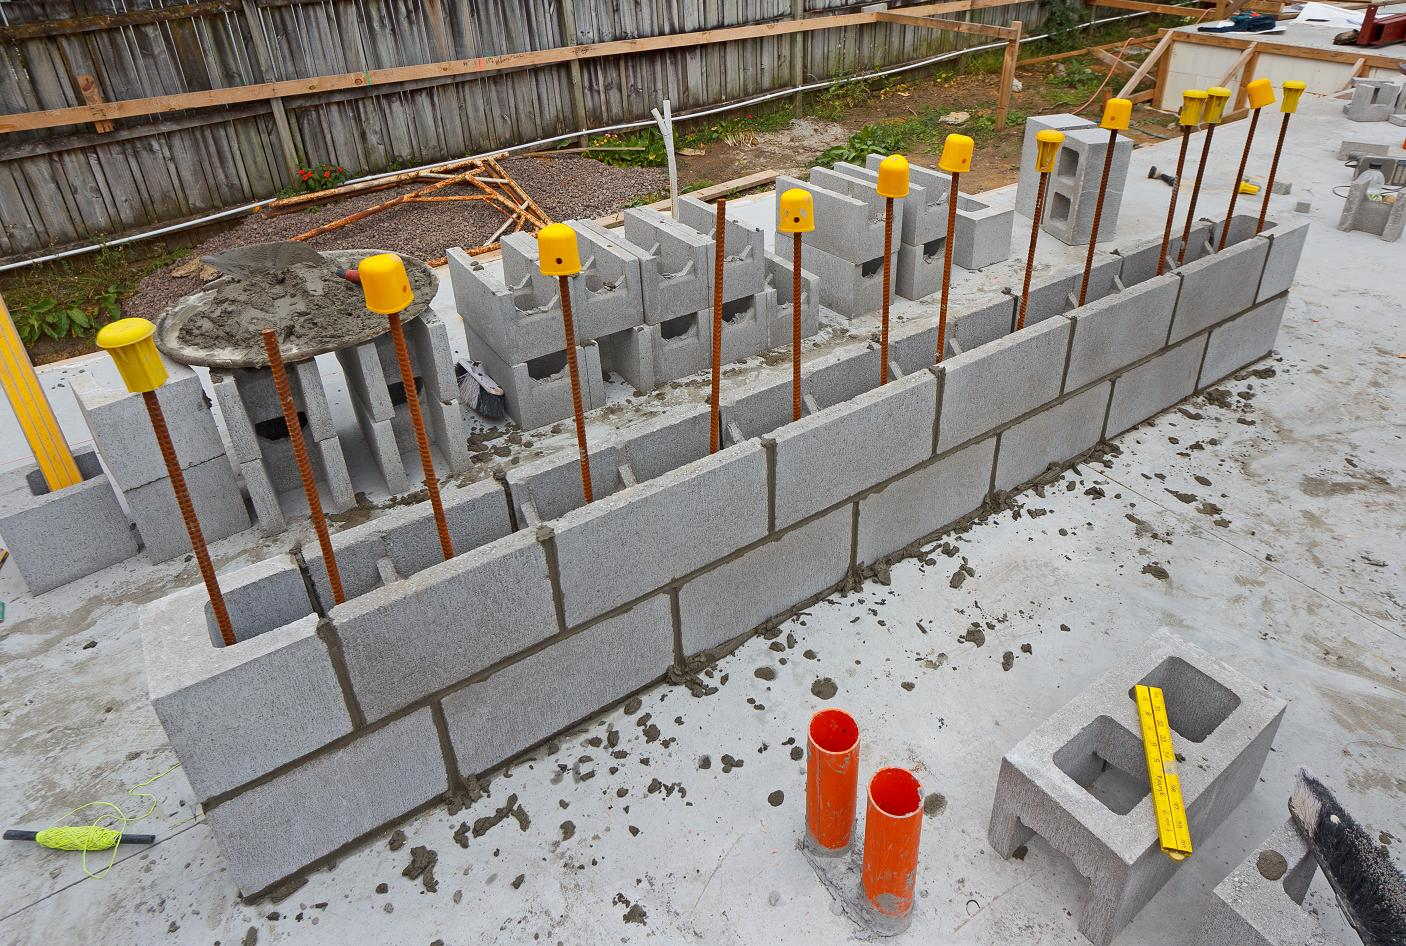 CONCRETE BLOCK WALLS | The New Zealand's First Passive House